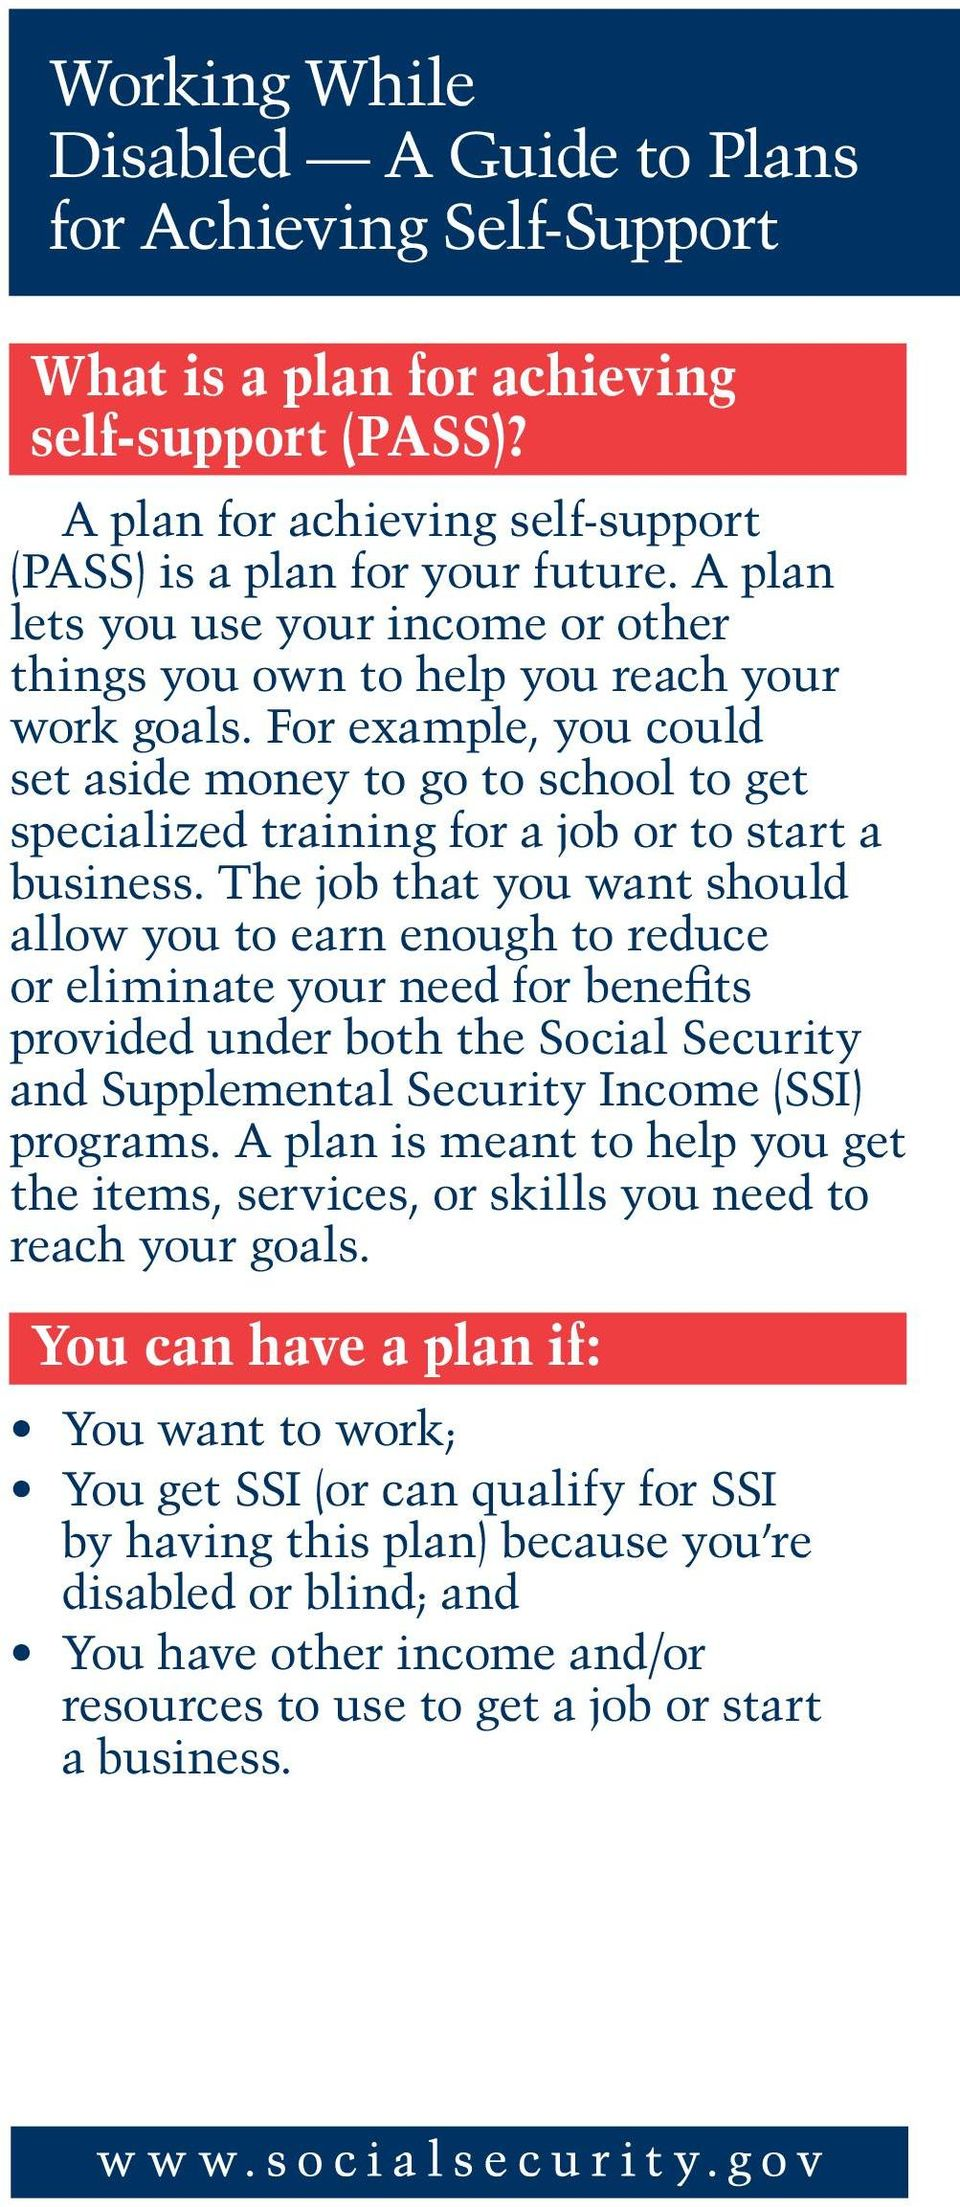 For example, you could set aside money to go to school to get specialized training for a job or to start a business.